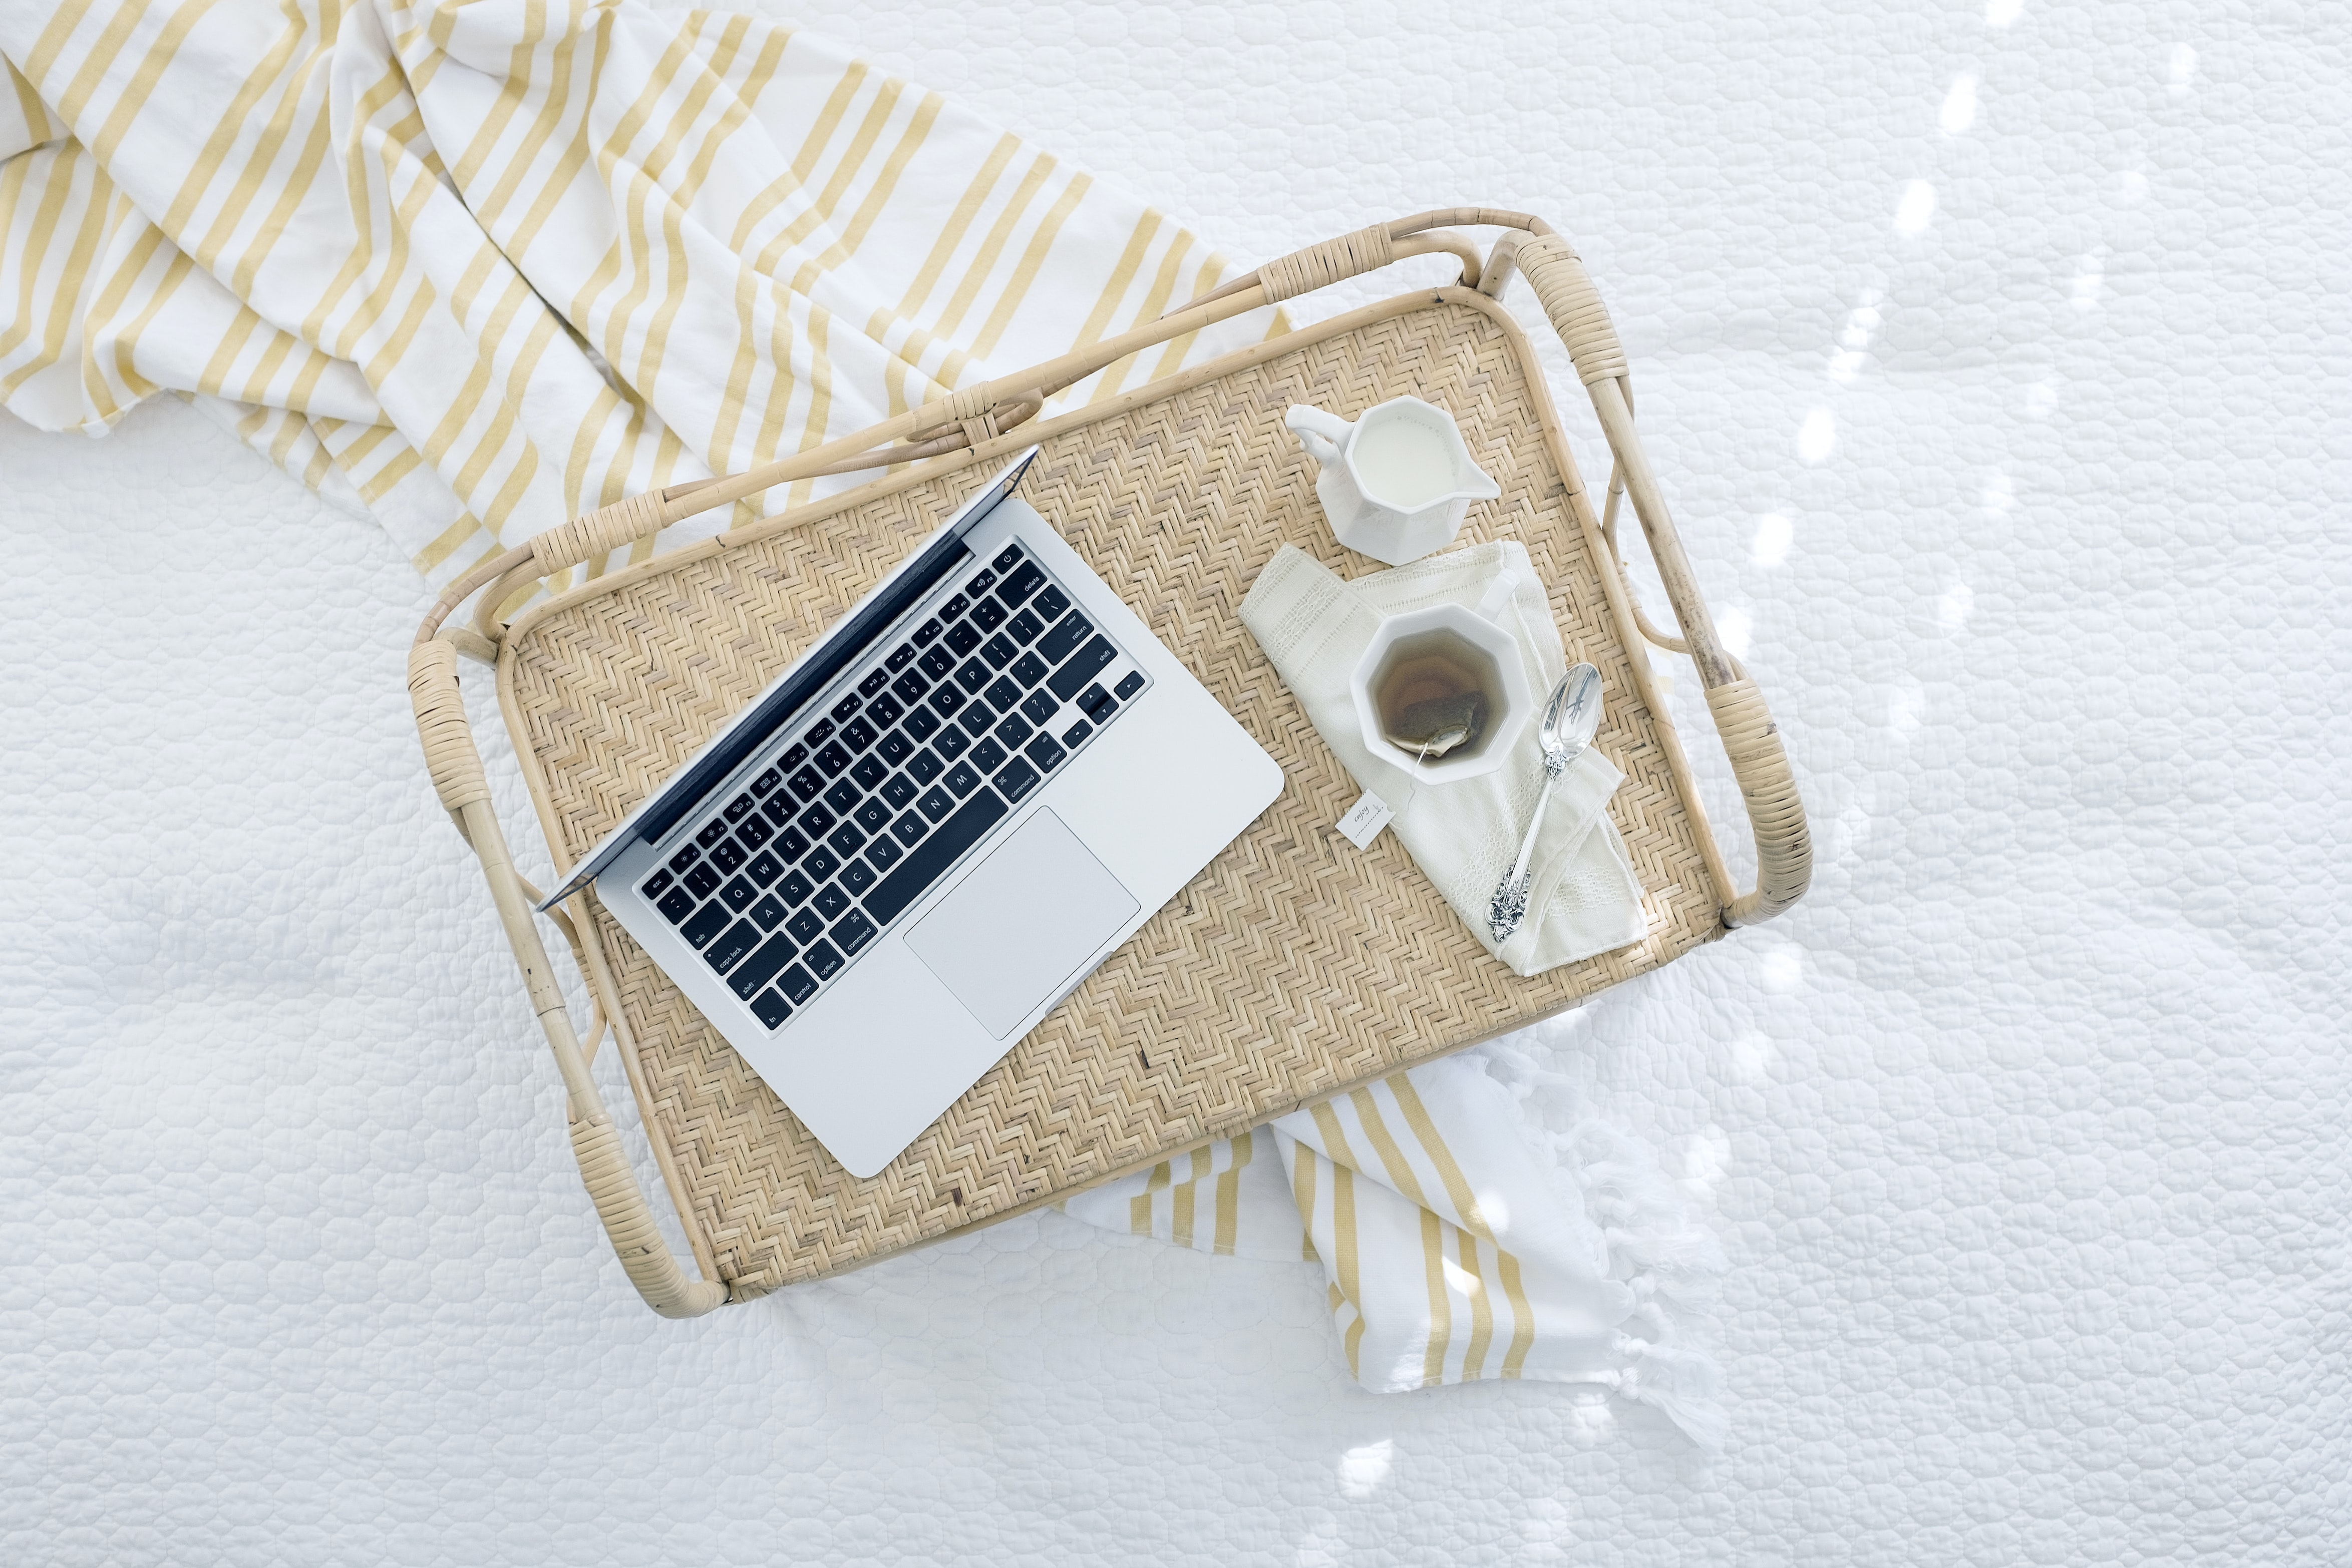 A laptop and a cup of tea with milk on a wicker tray